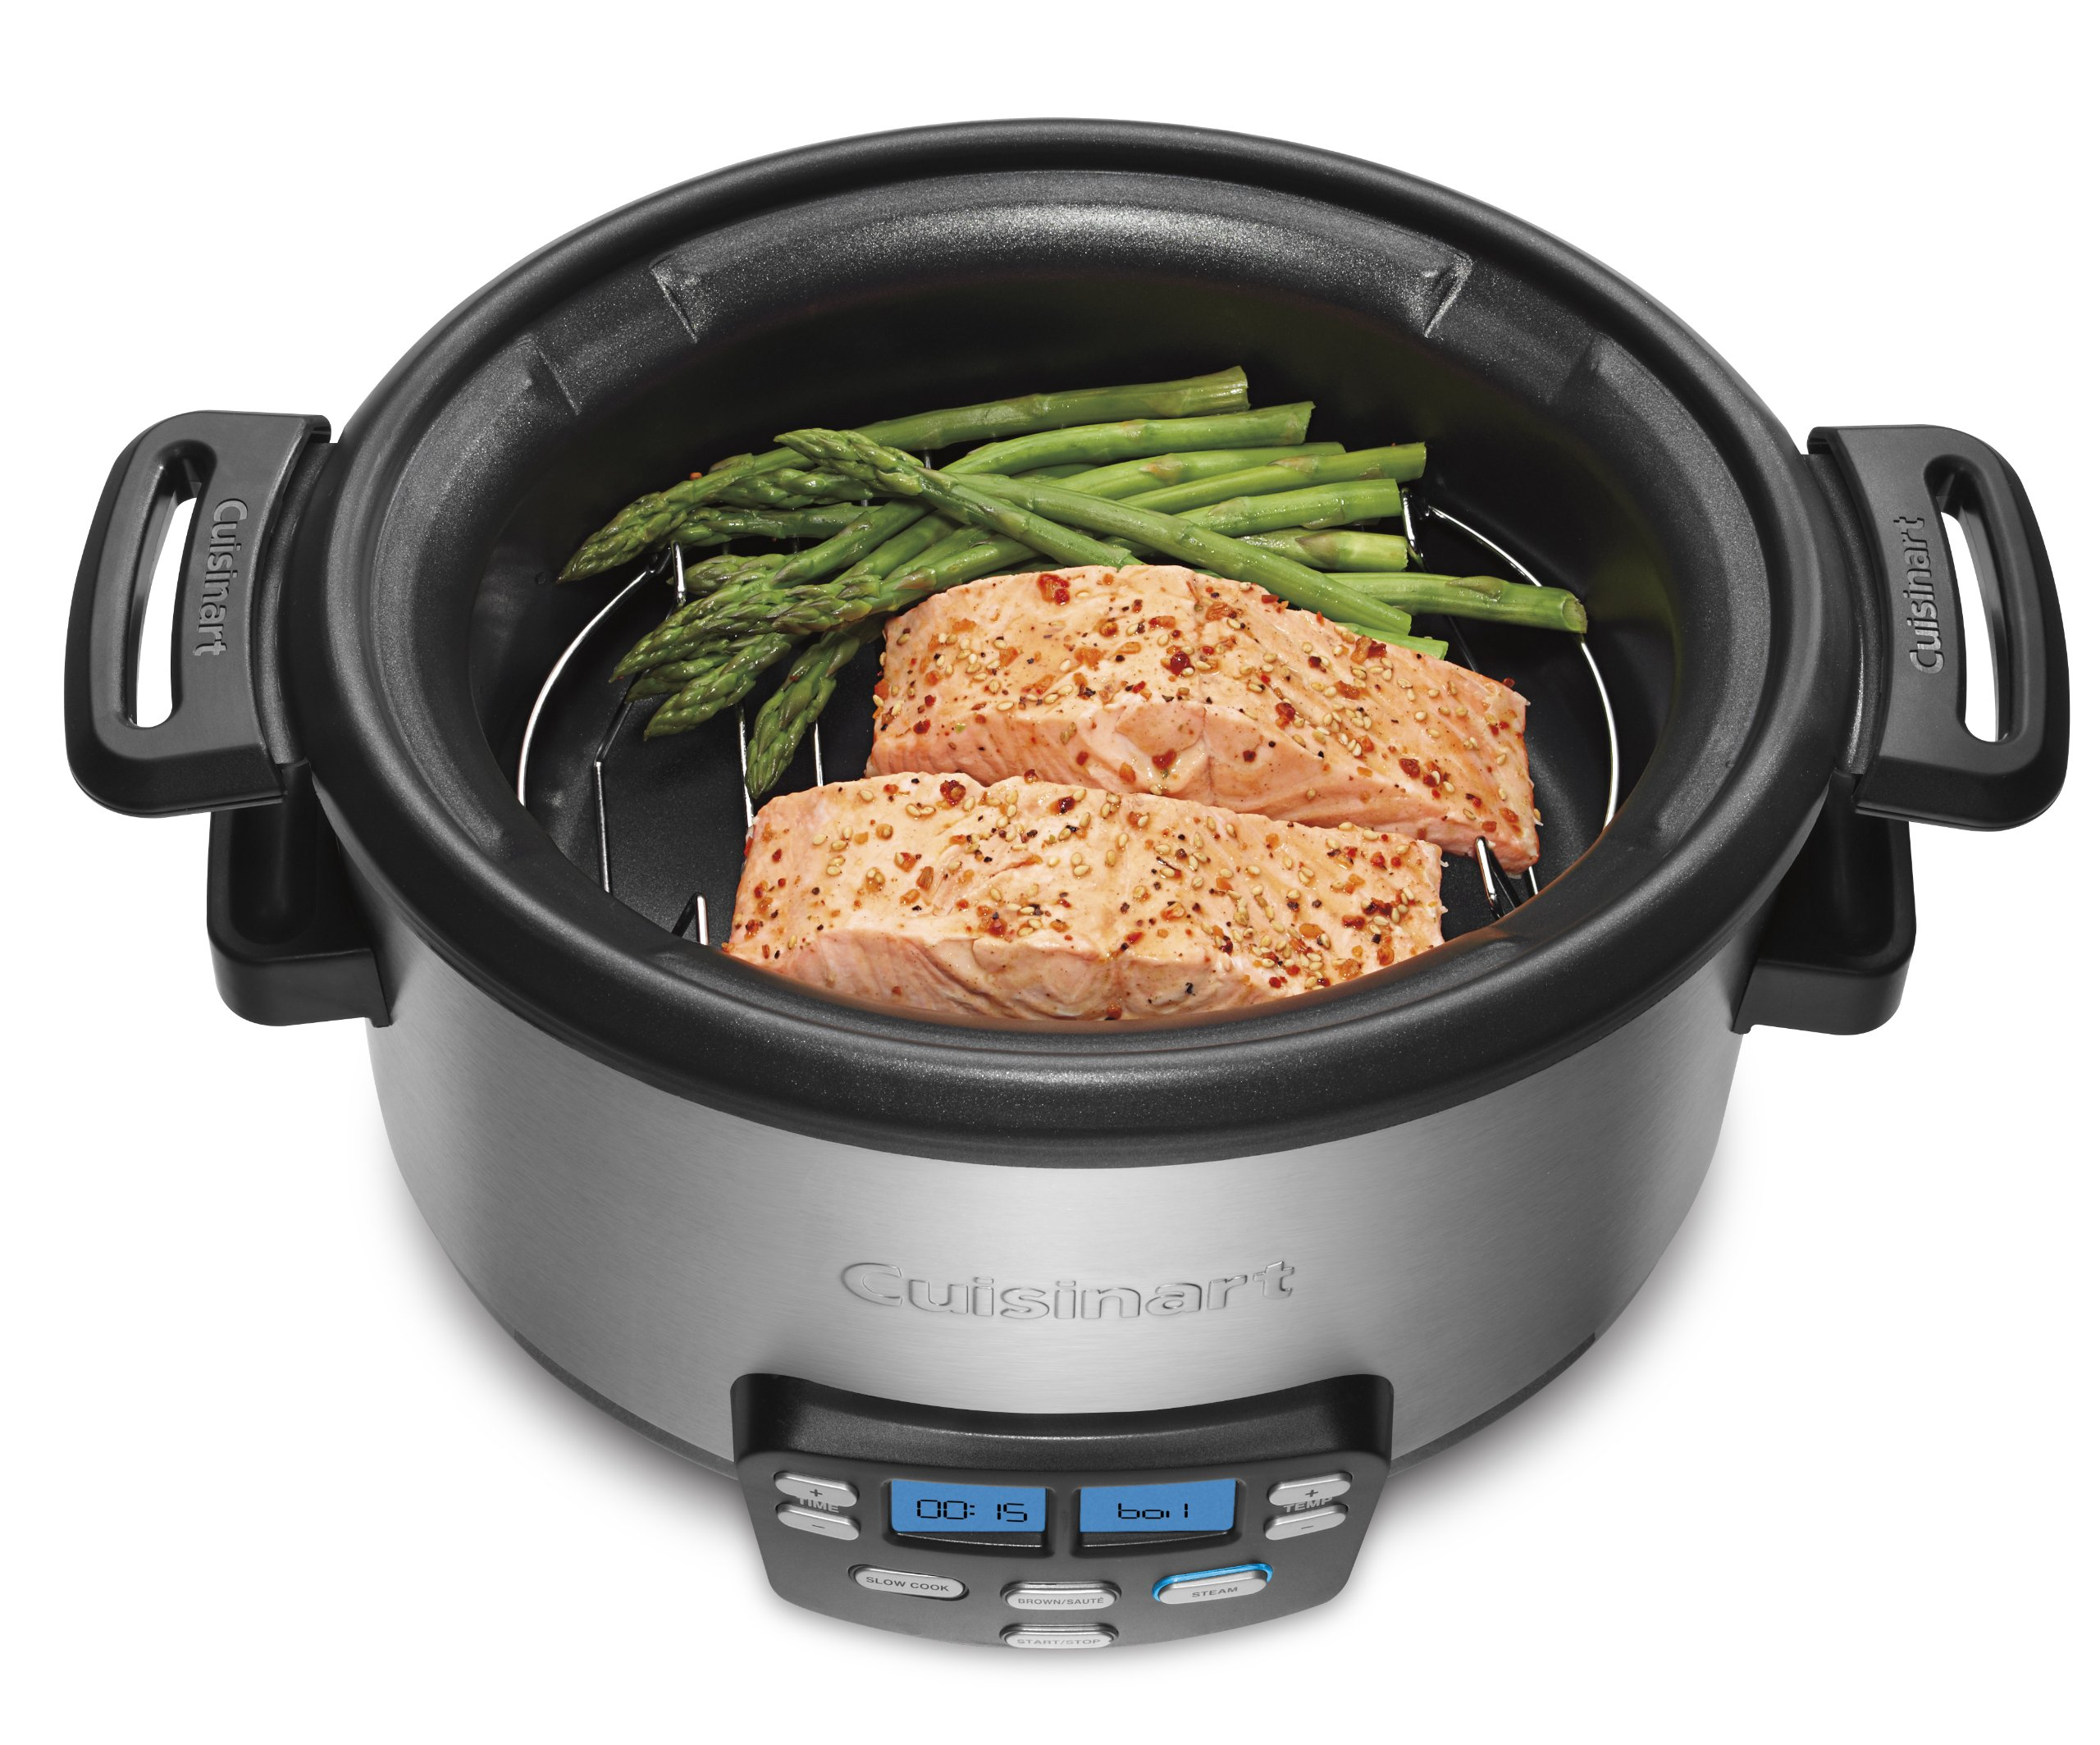 Cuisinart MSC-400 3-In-1 Cook Central 4-Quart Multi-Cooker: Slow Cooker, Brown/Saute, Steamer by Cuisinart (Image #6)